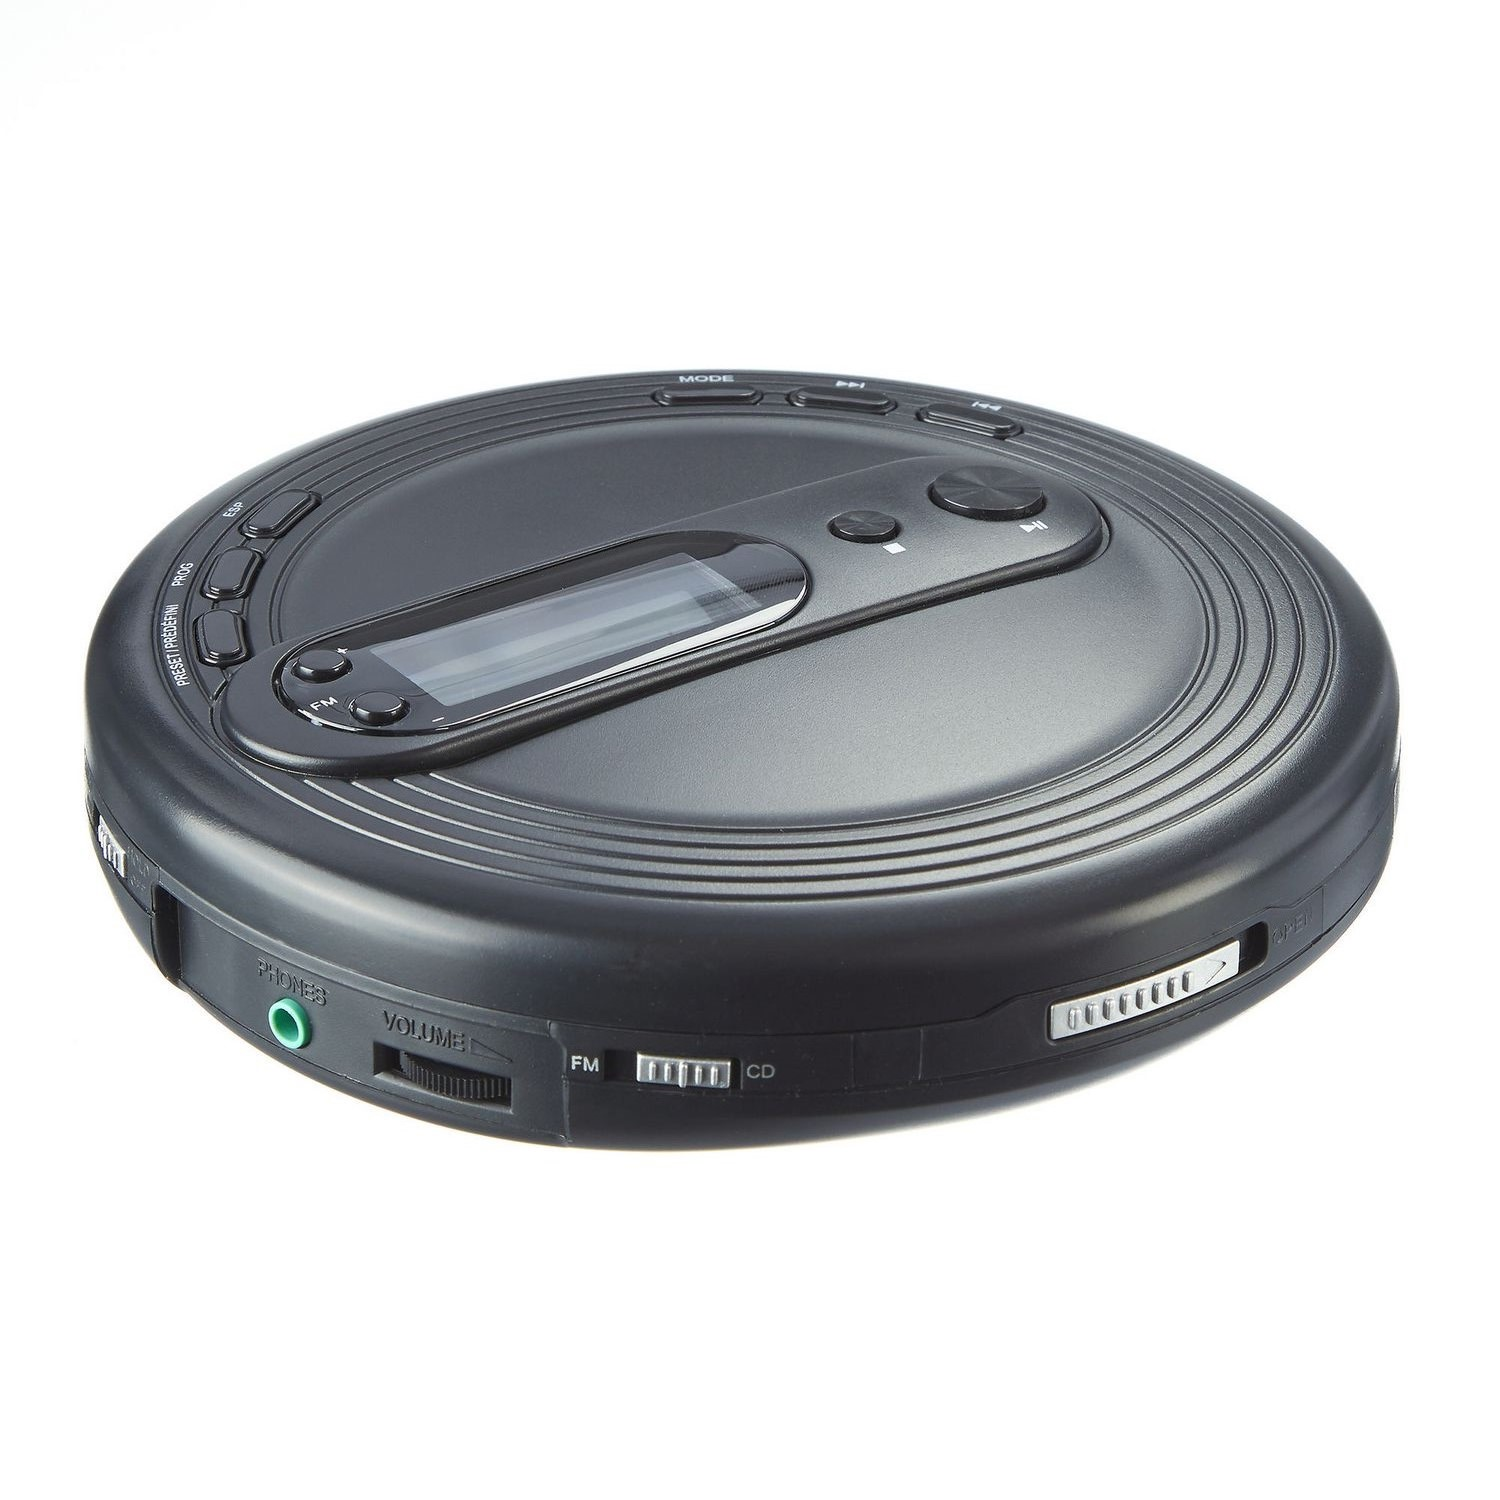 ONN Portable CD Player with FM Radio and Anti-Skip Protection, Black (Non-Retail Packaging)